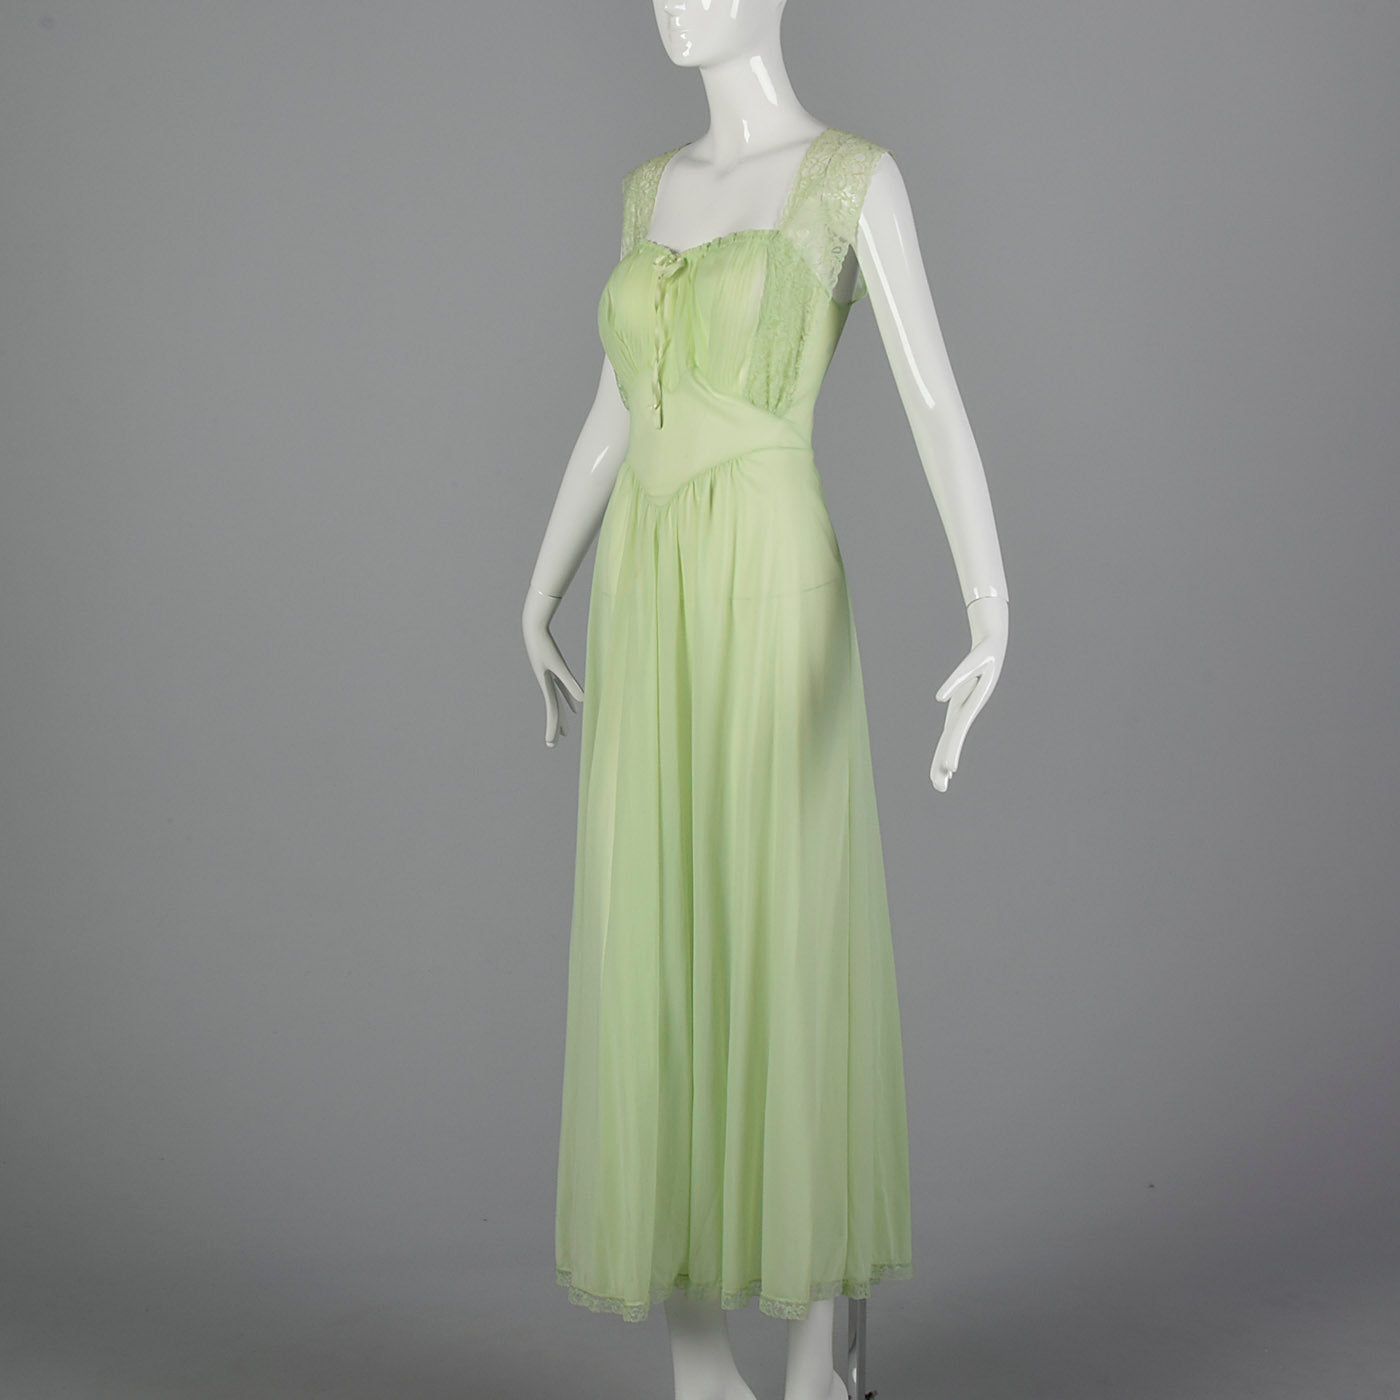 1950s Vanity Fair Green Nightgown with Crystal Pleat Bust